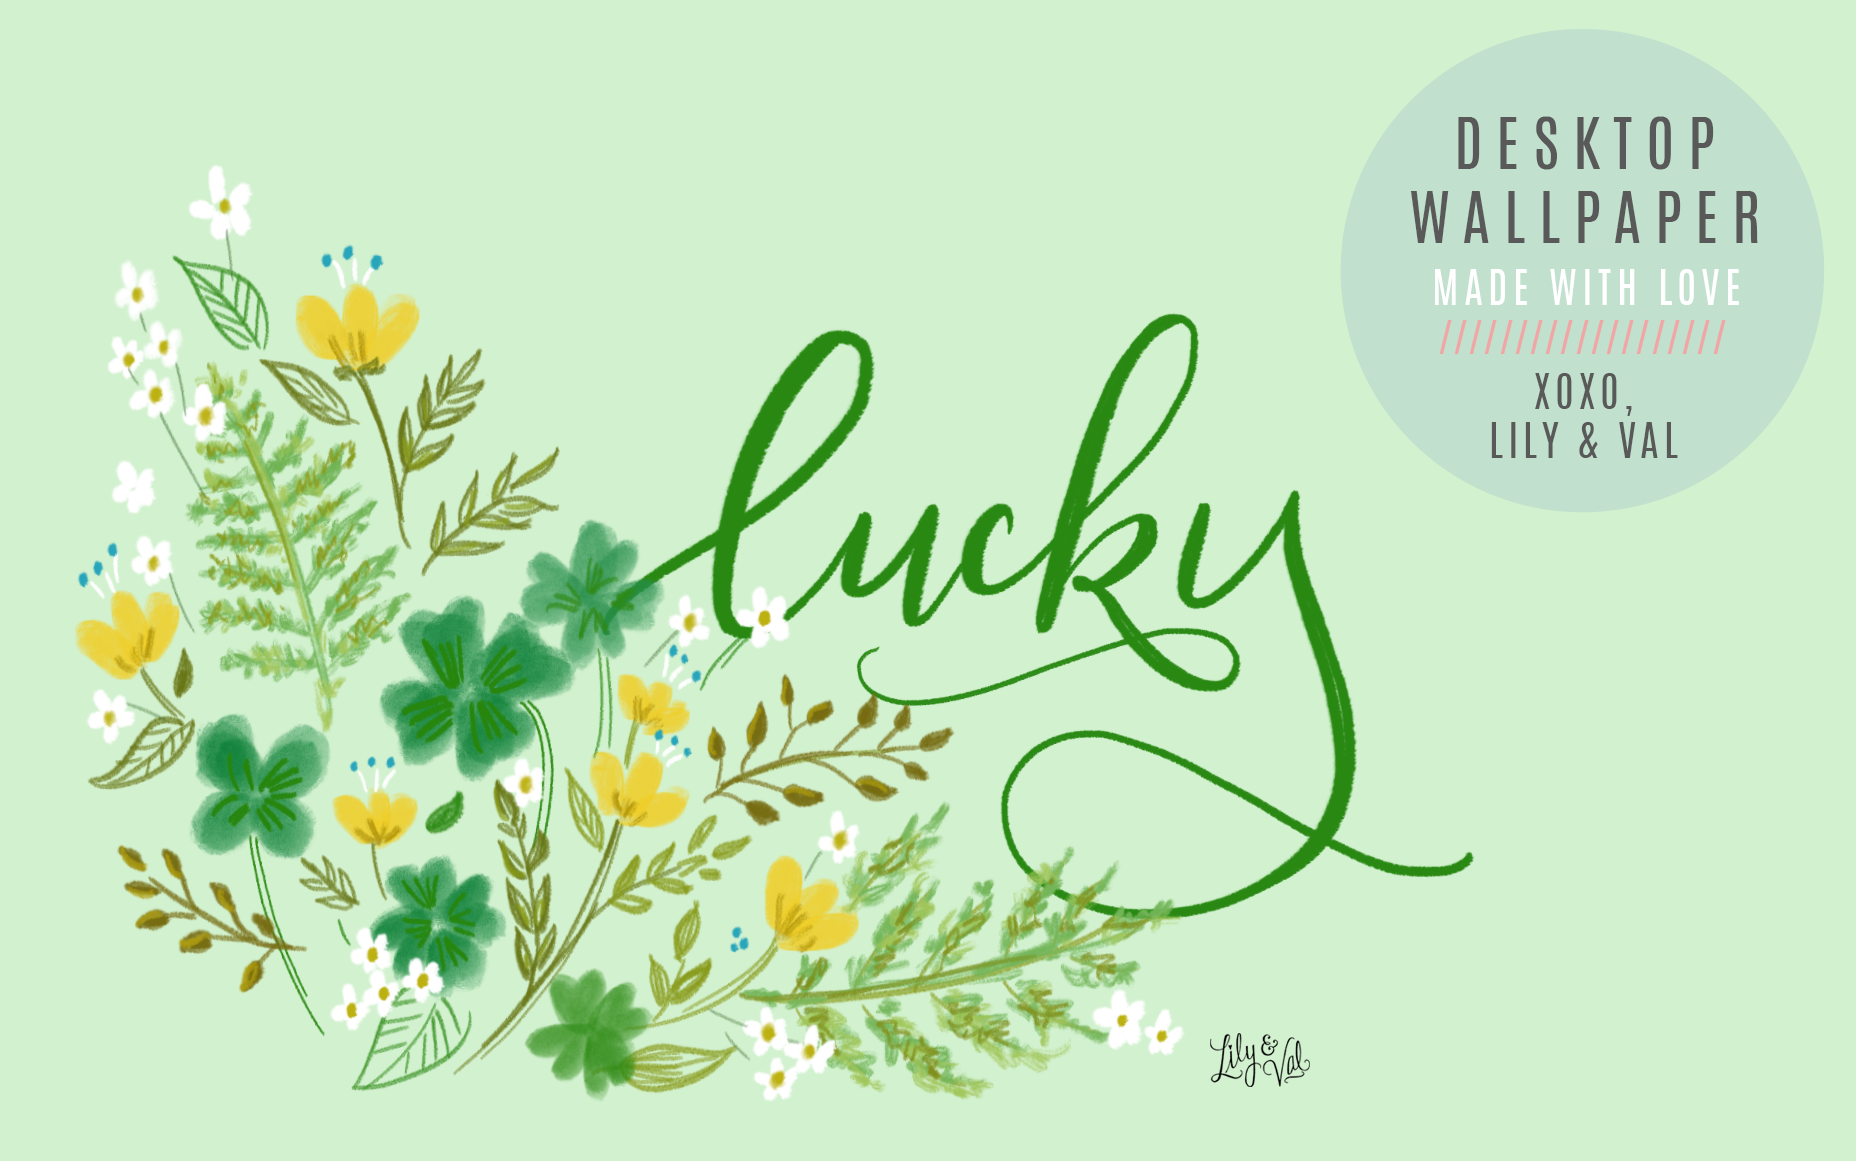 March s lucky free wallpaper download - March desktop wallpaper ...